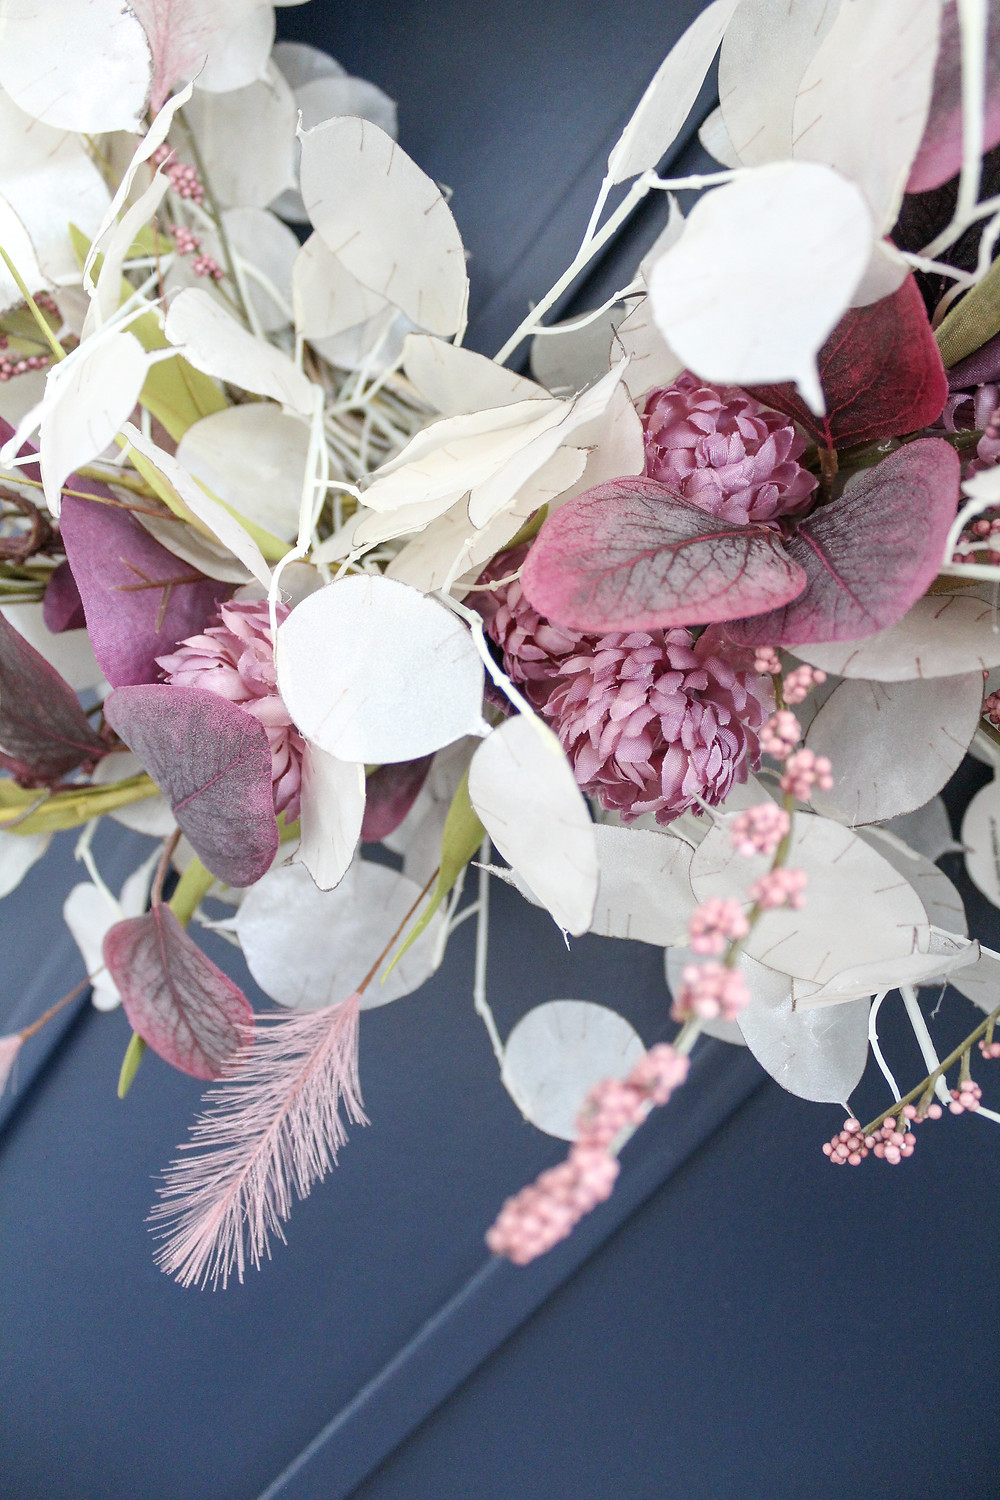 Decorate for fall with this stunning fall wreath. The beautiful plum and blush pink stems against the translucent lunaria stems creates a gorgeous look for the autumnal months. #fallwreath #fallDIY #falldecor #lunariawreath